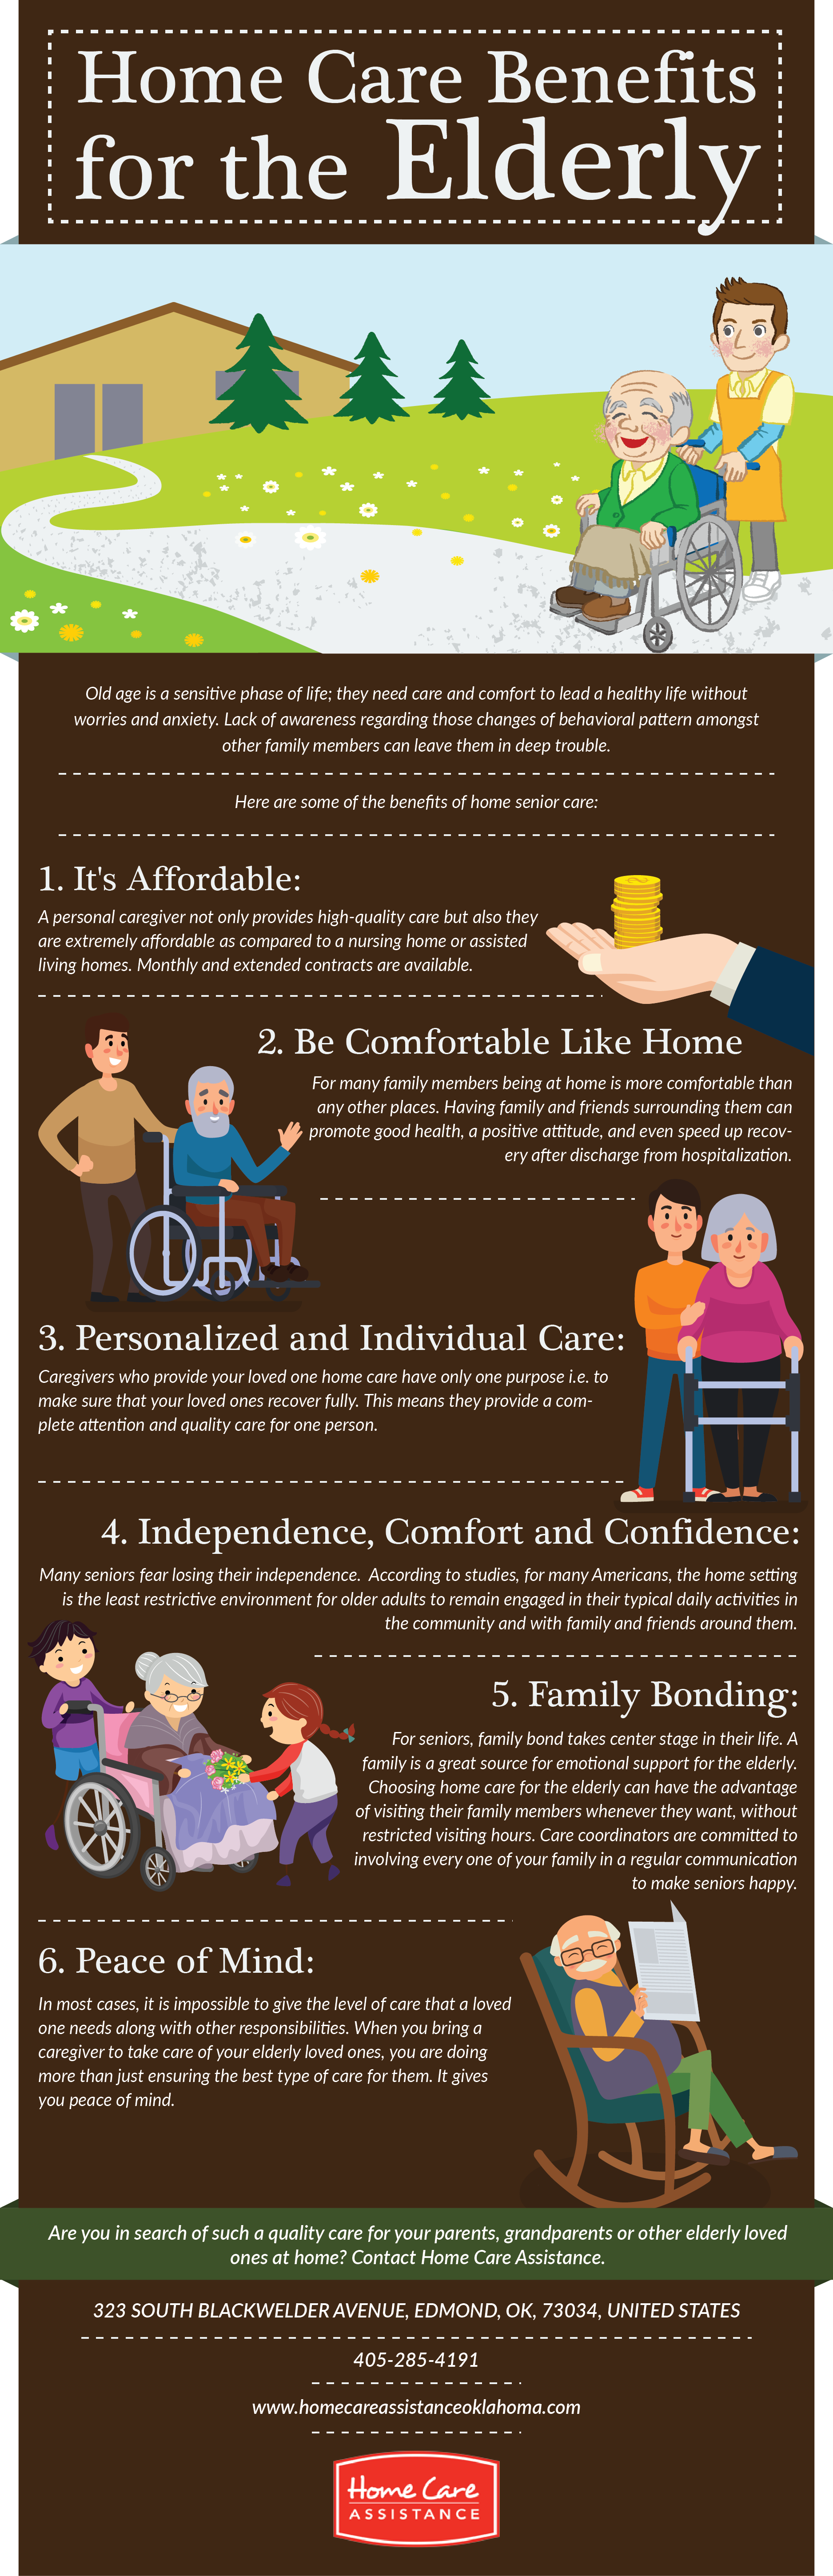 Home Care Benefits for the Elderly.png